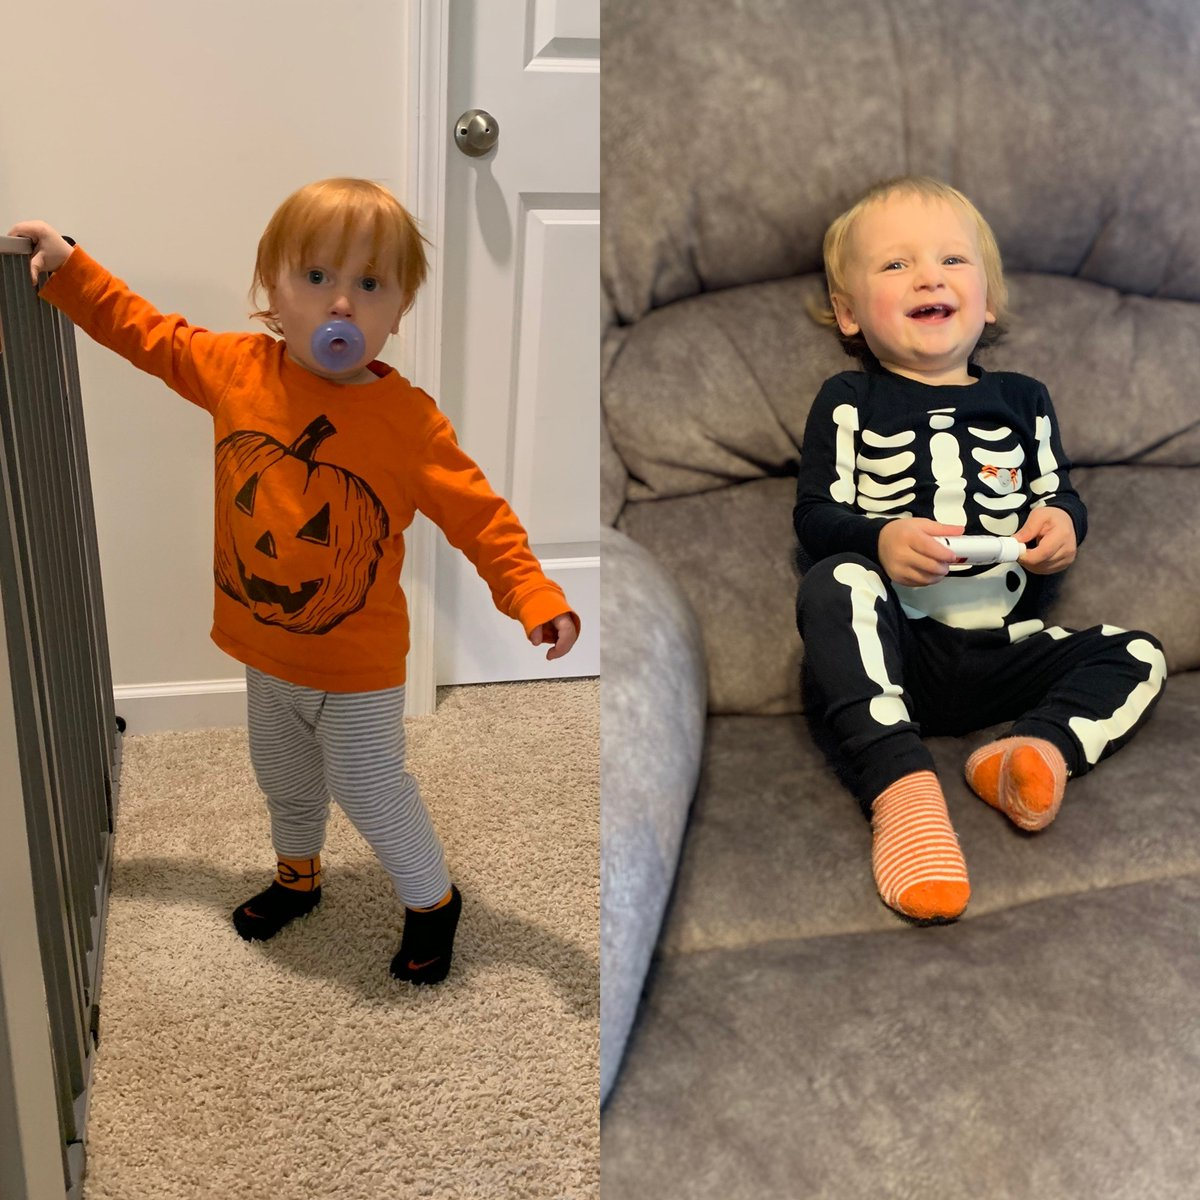 "One of our couples thought they might never have children. We were honored to be able to help them achieve pregnancy, resulting in the ""treats"" who are now their twin boys!  Happy Halloween from your friends at Southeastern Fertility! #Halloween2020 #infertility #ivf #ttc https://t.co/aj2uONRpSI"